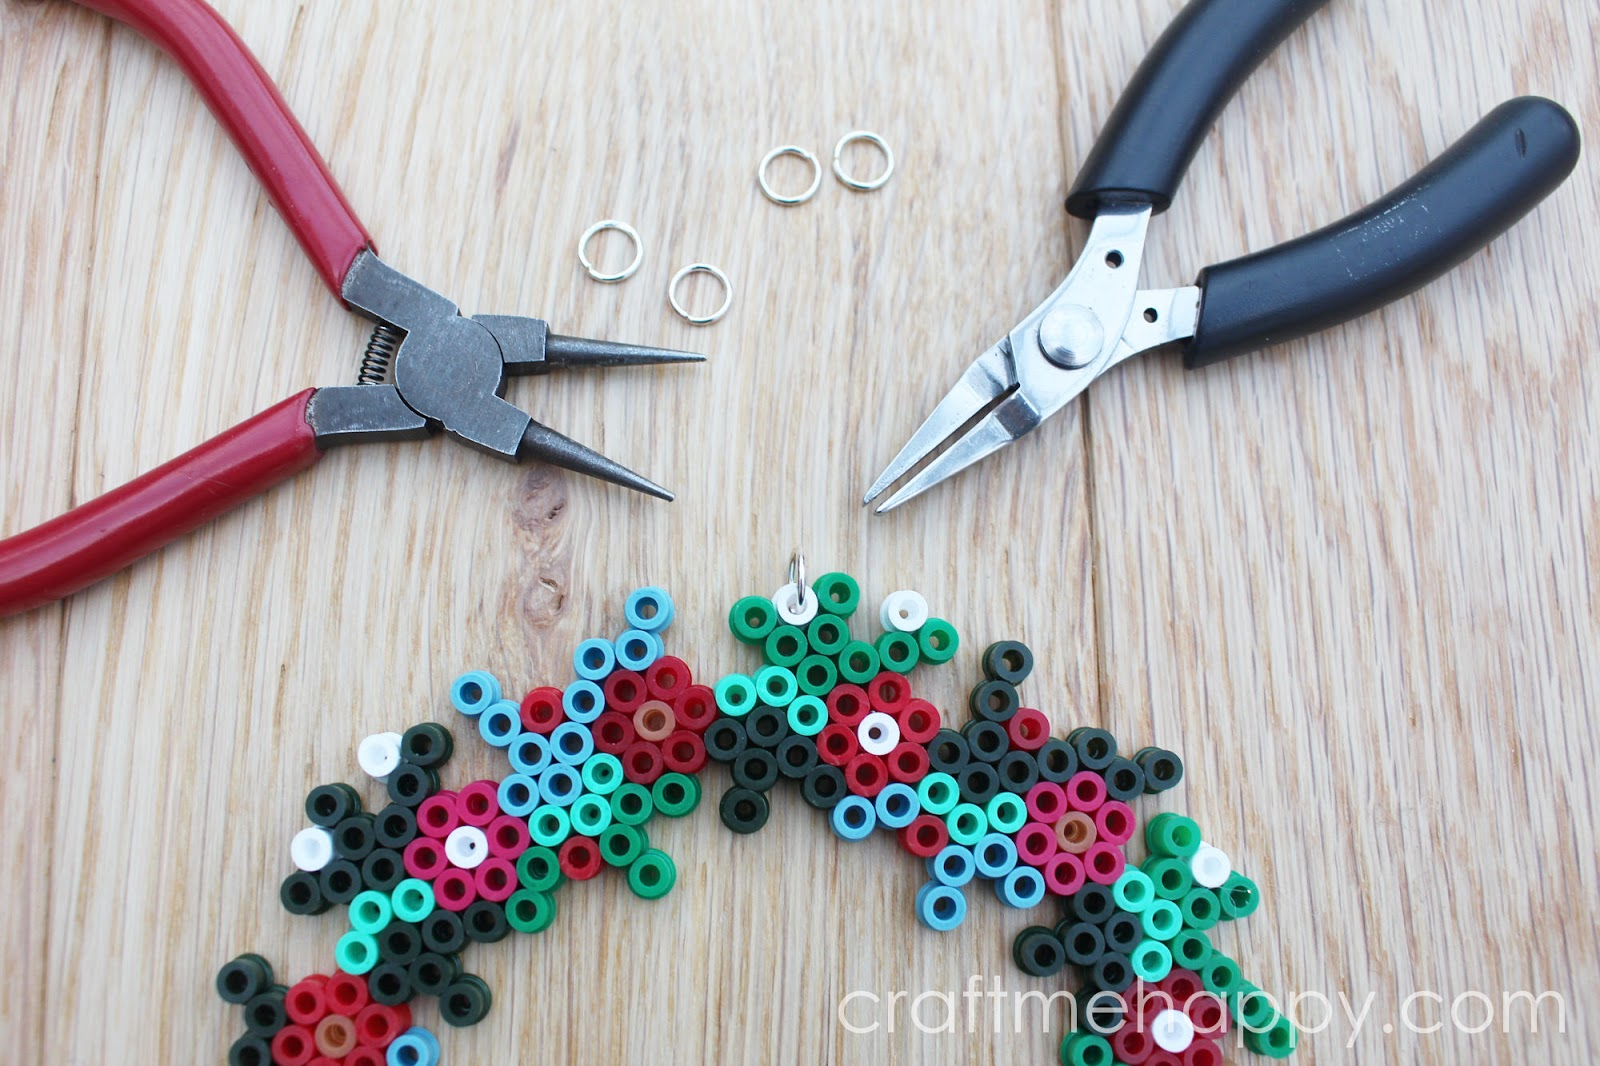 Hama bead Christmas Wreath | Craft me Happy!: Hama bead Christmas Wreath